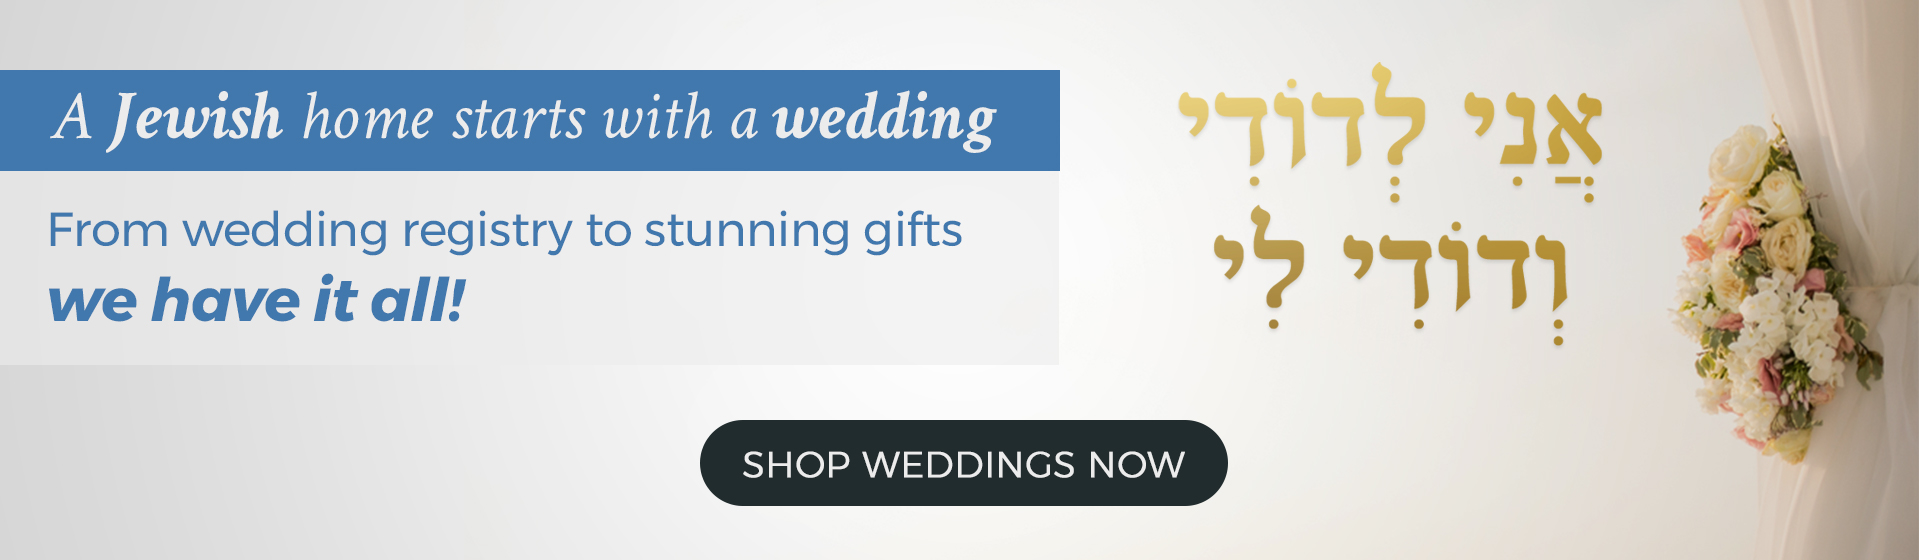 Shop Weddings at Judaica.com!